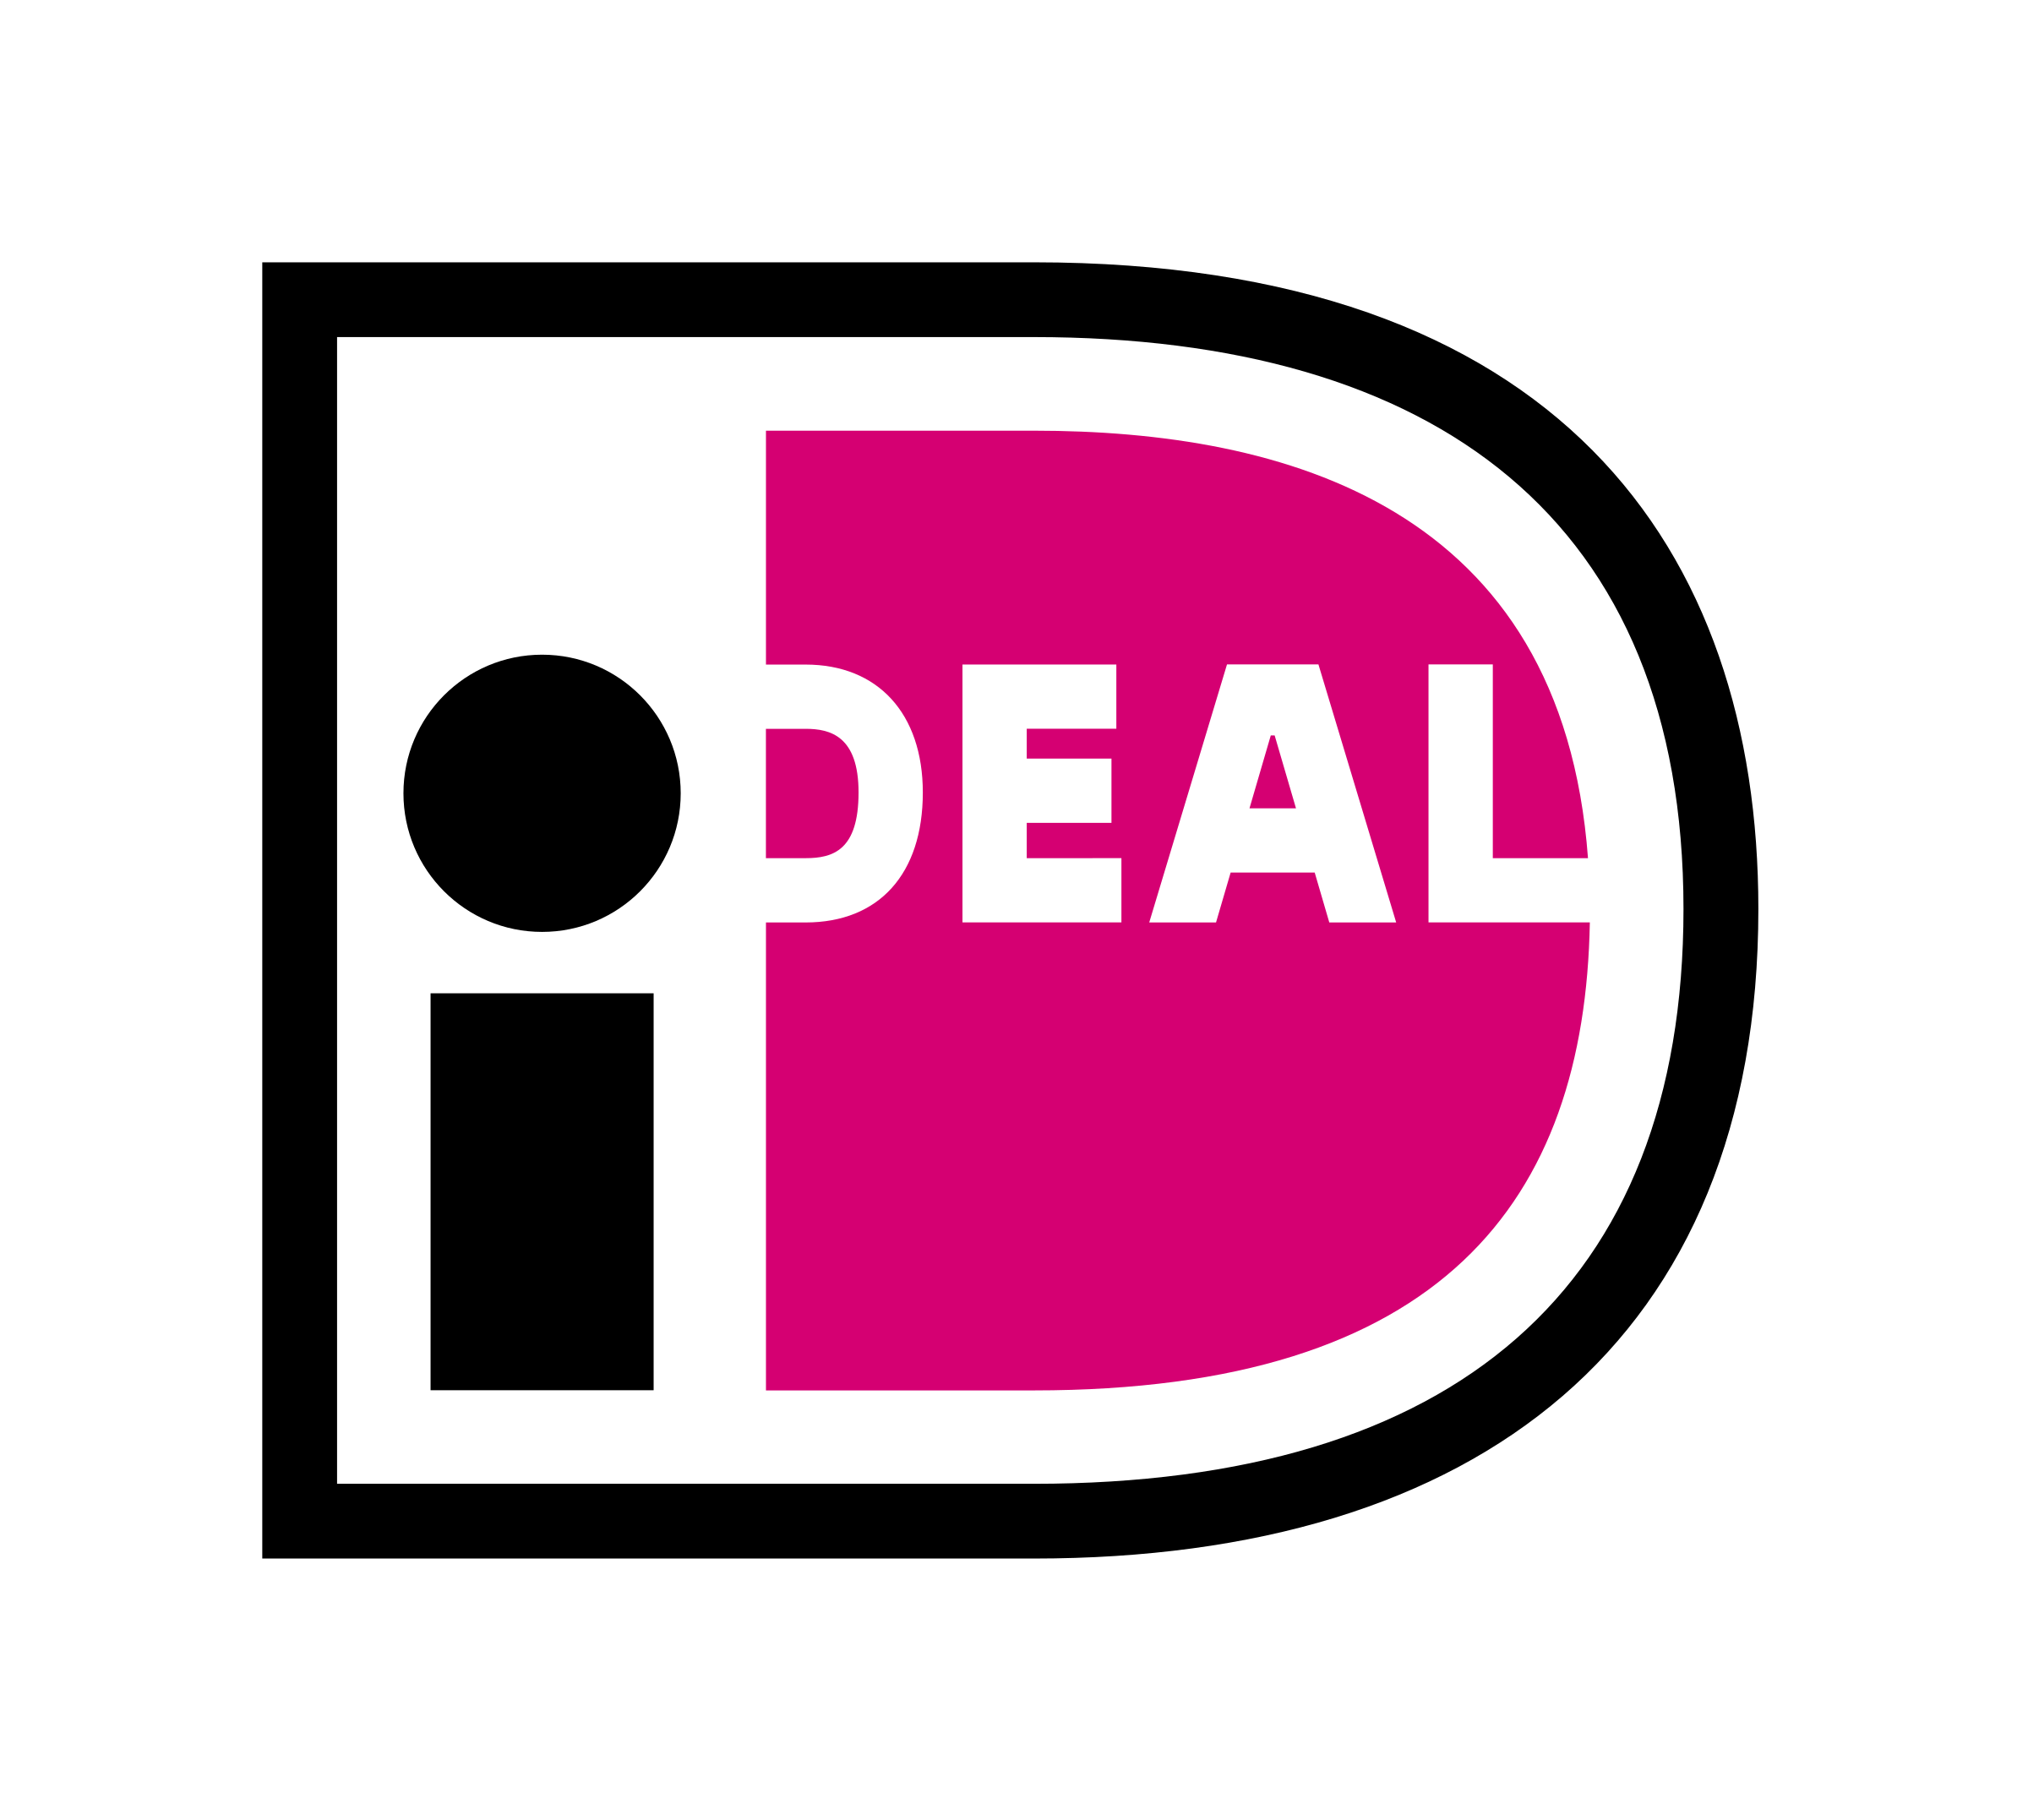 ideal-logo-png-transparent | Krekt wat reclame